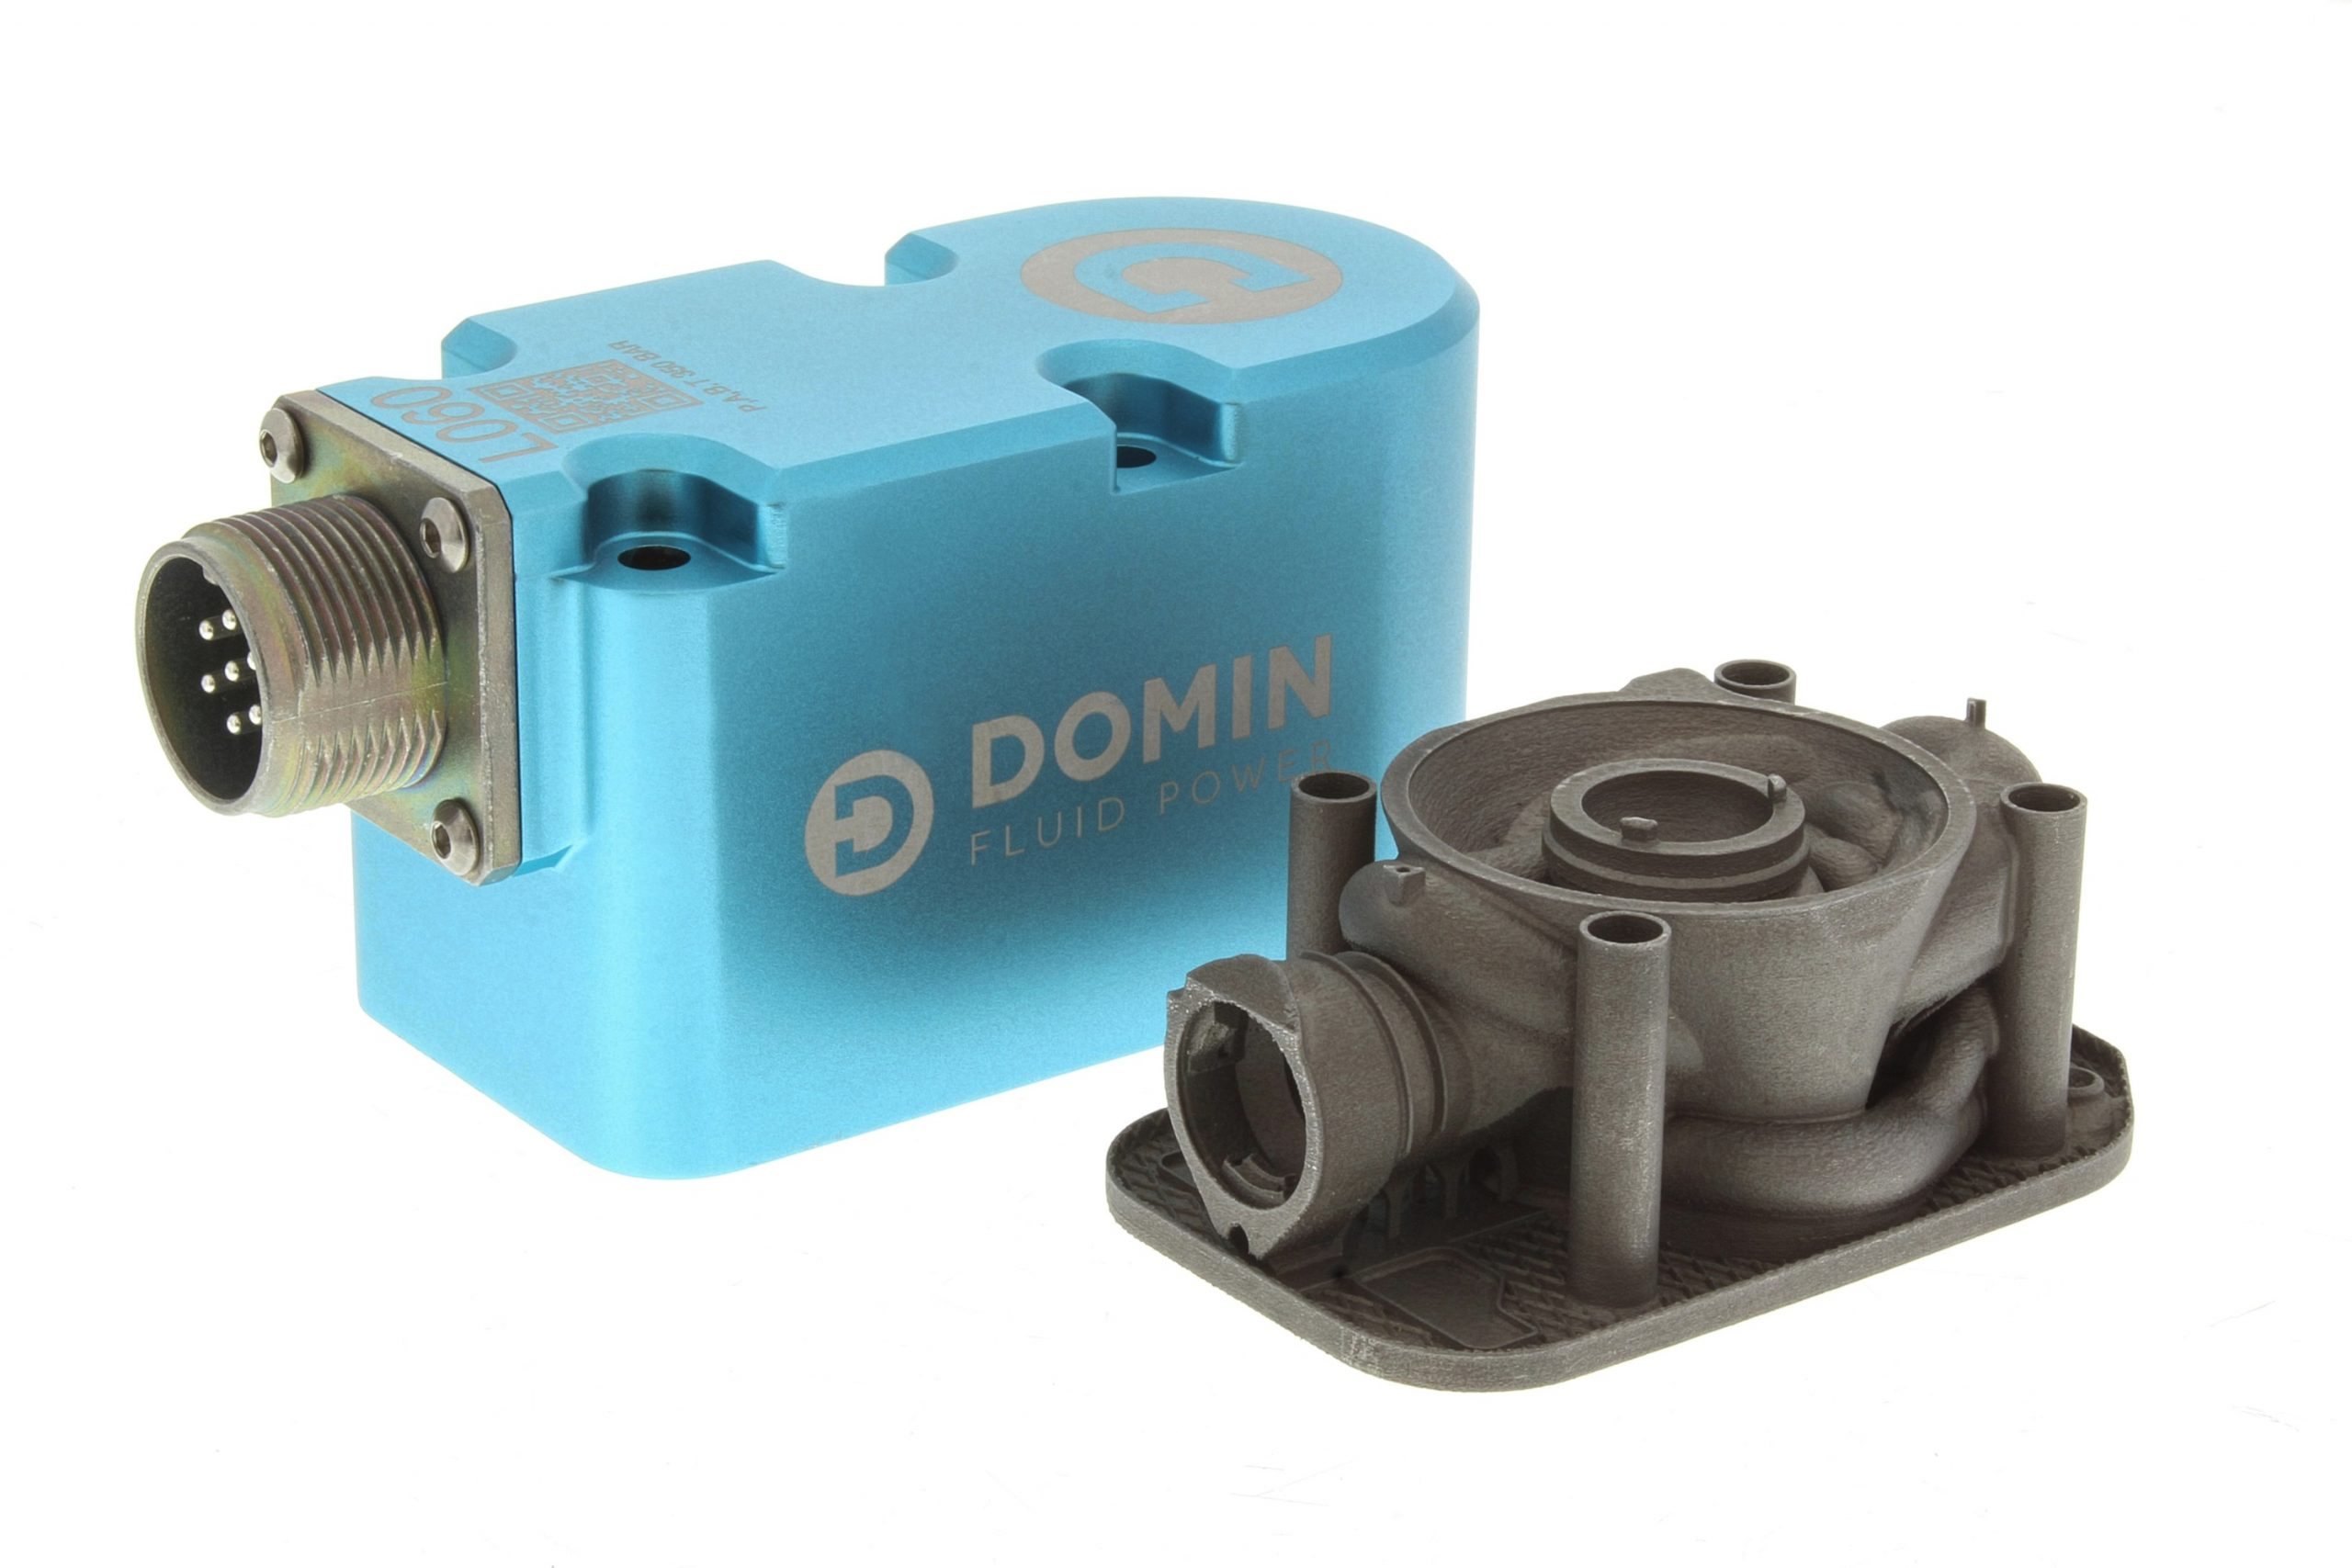 Domin's 3D printed ultra compact direct drive servo valves. Photo via Renishaw.